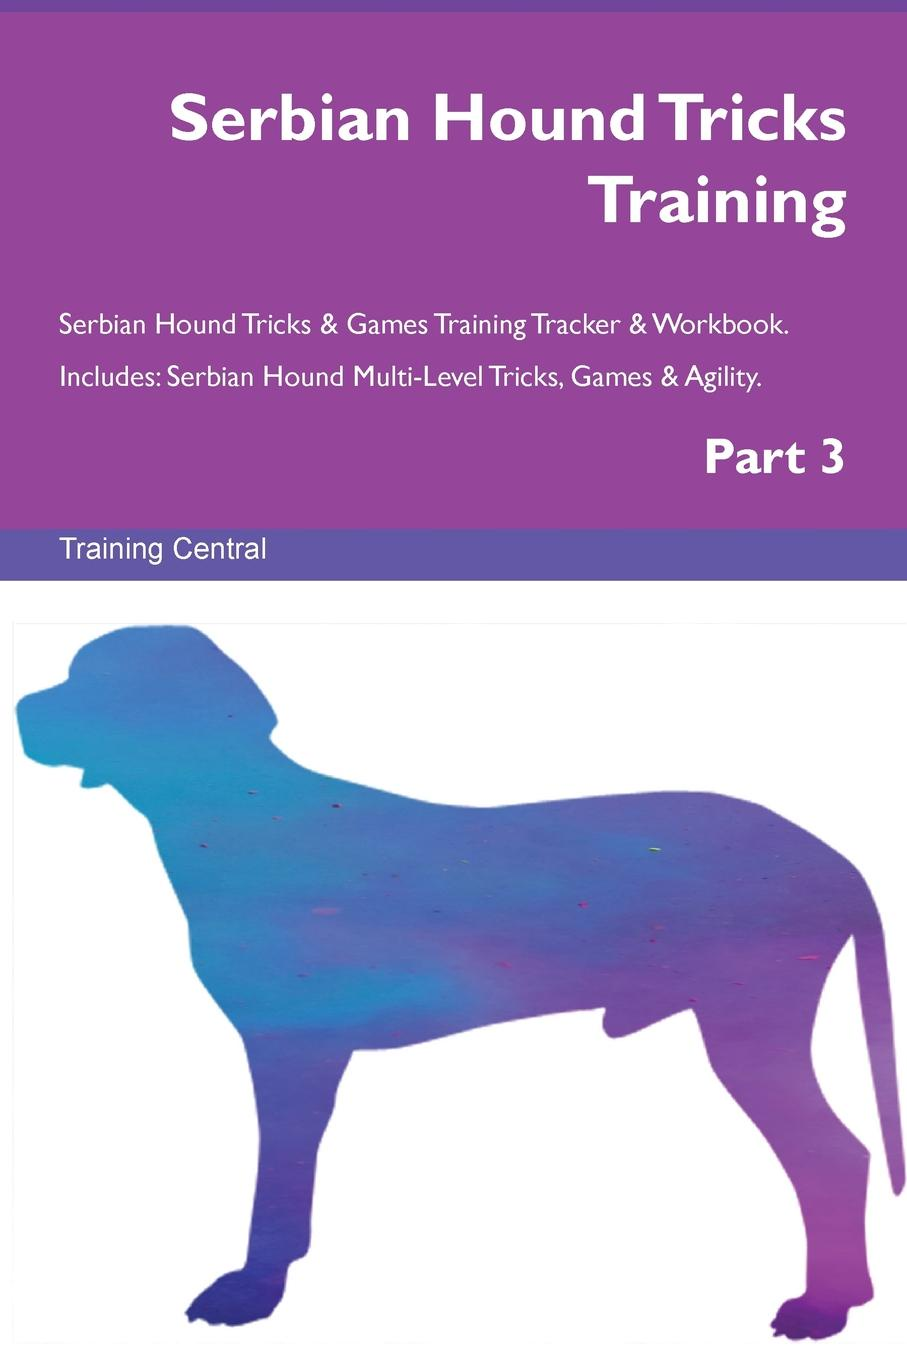 Training Central Serbian Hound Tricks Training Serbian Hound Tricks & Games Training Tracker & Workbook. Includes. Serbian Hound Multi-Level Tricks, Games & Agility. Part 3 training central russian piebald hound tricks training russian piebald hound tricks games training tracker workbook includes russian piebald hound multi level tricks games agility part 3